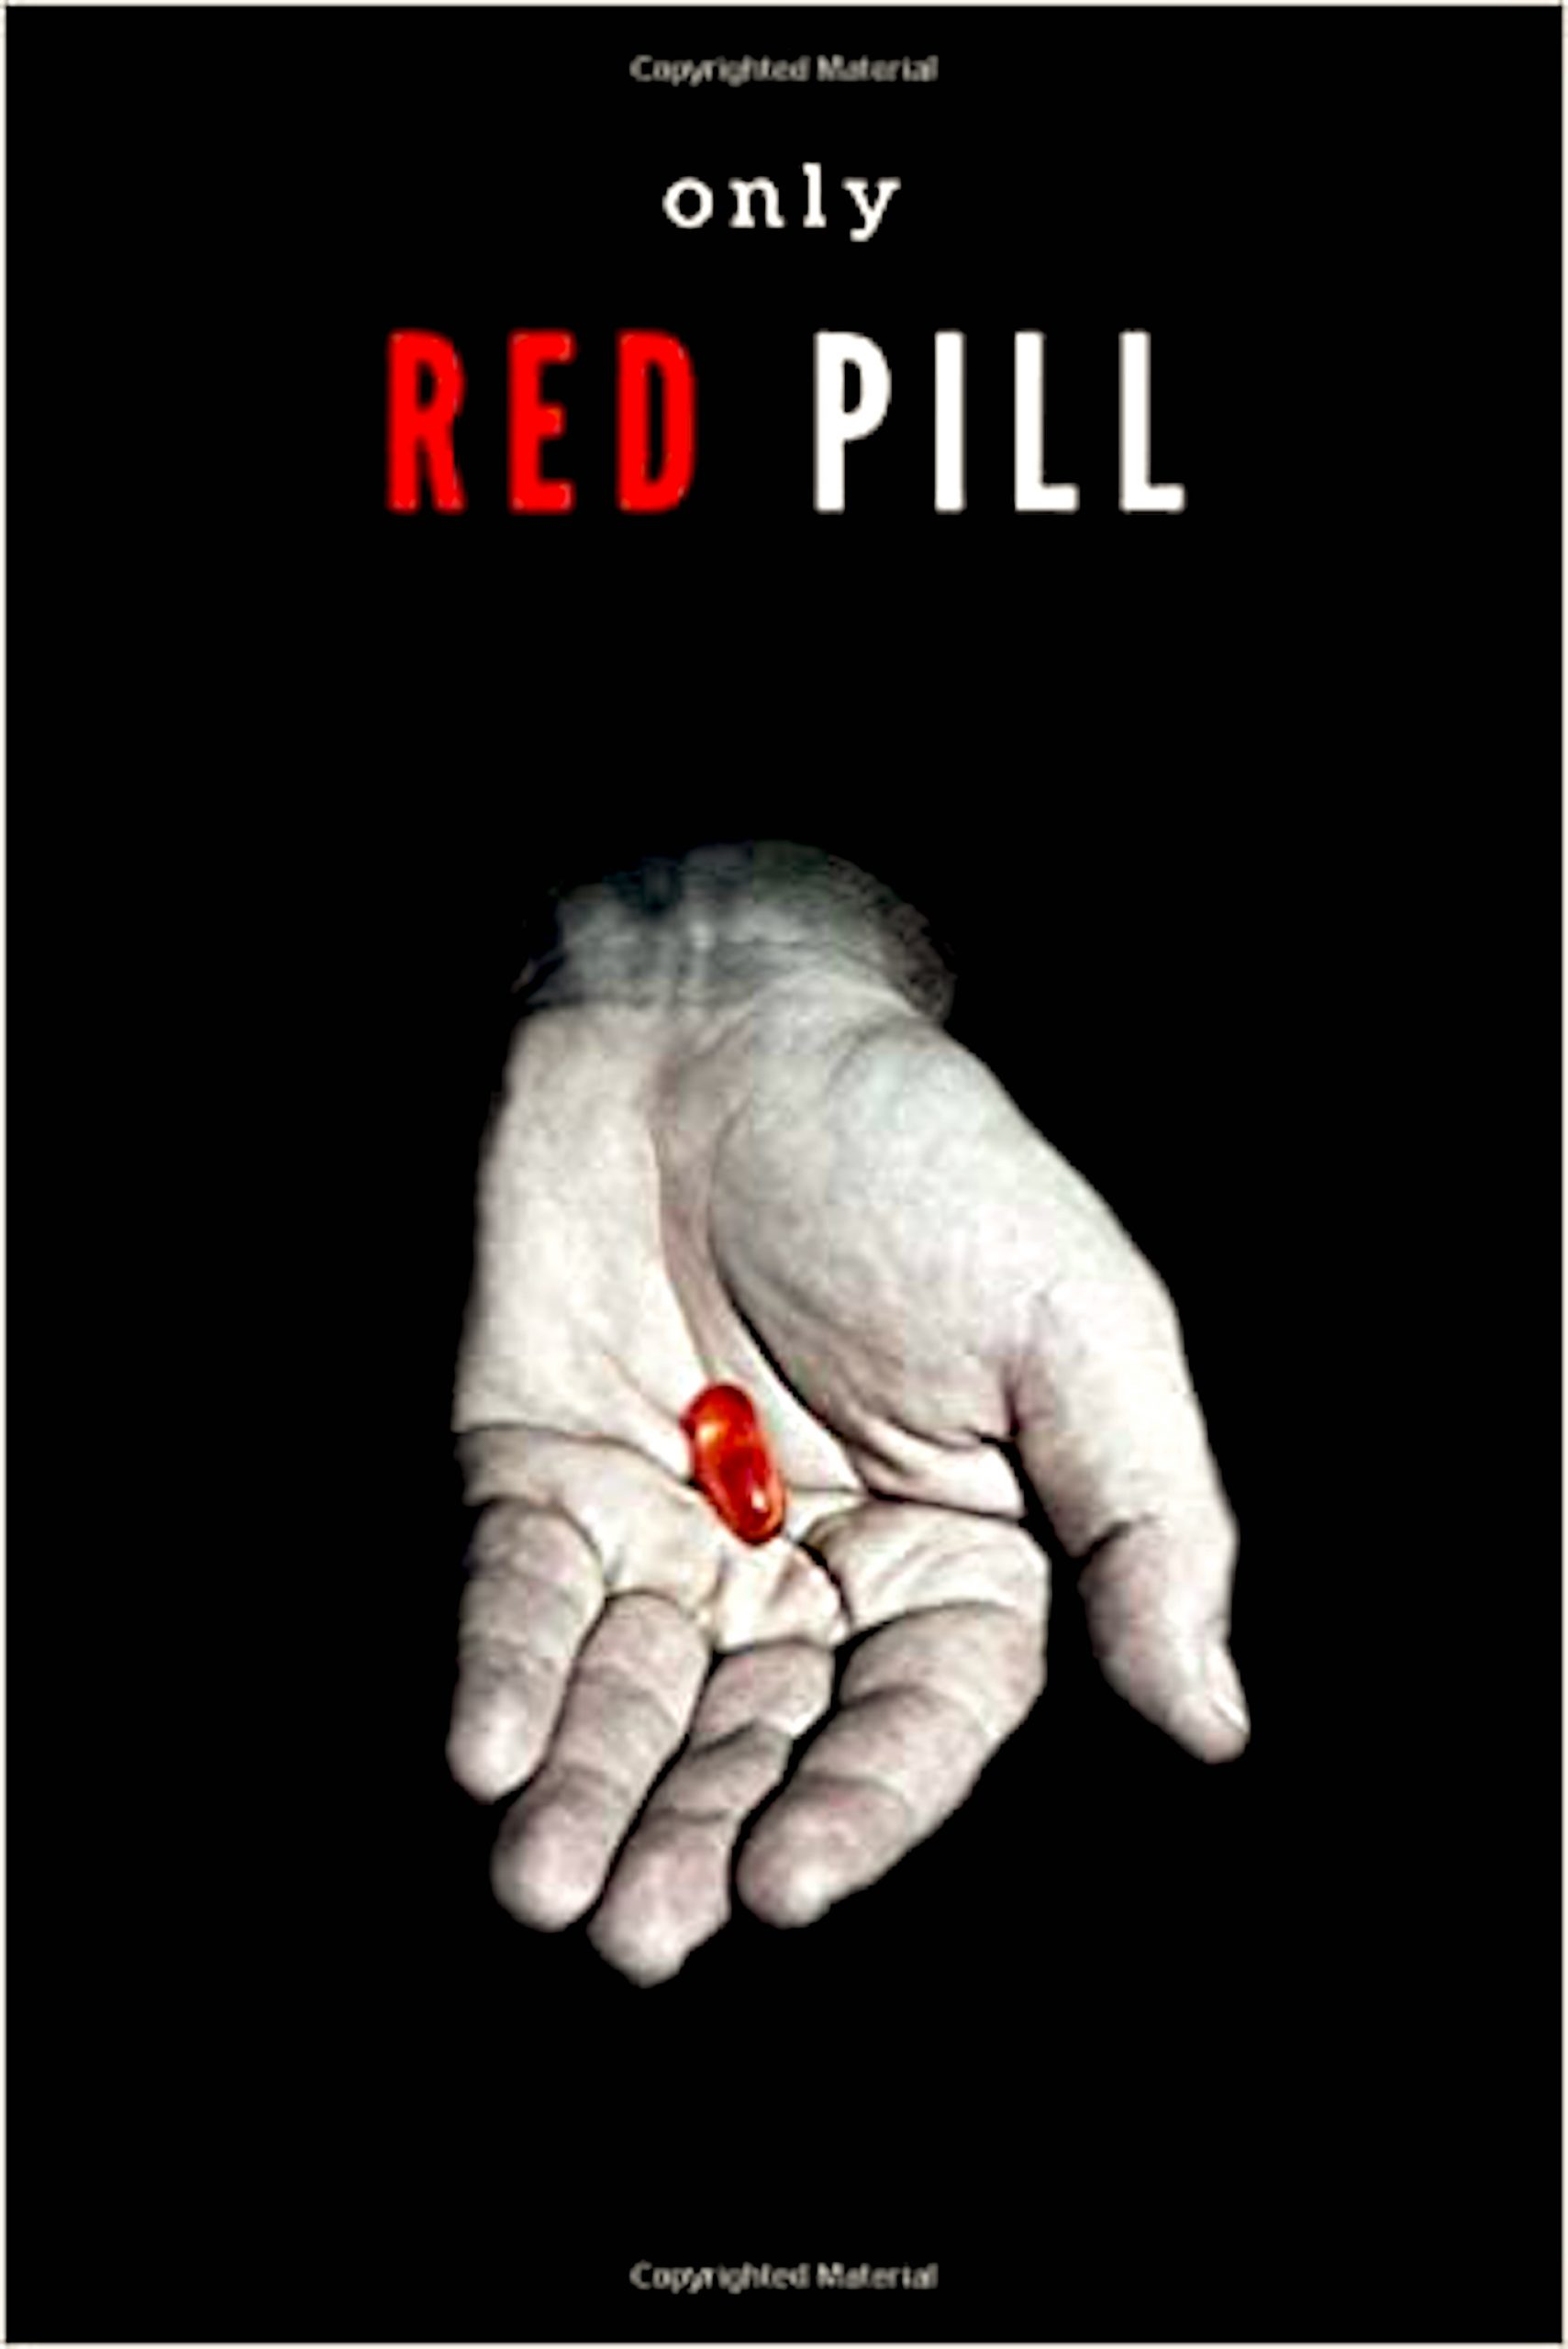 Red Pill (foto Amazon)